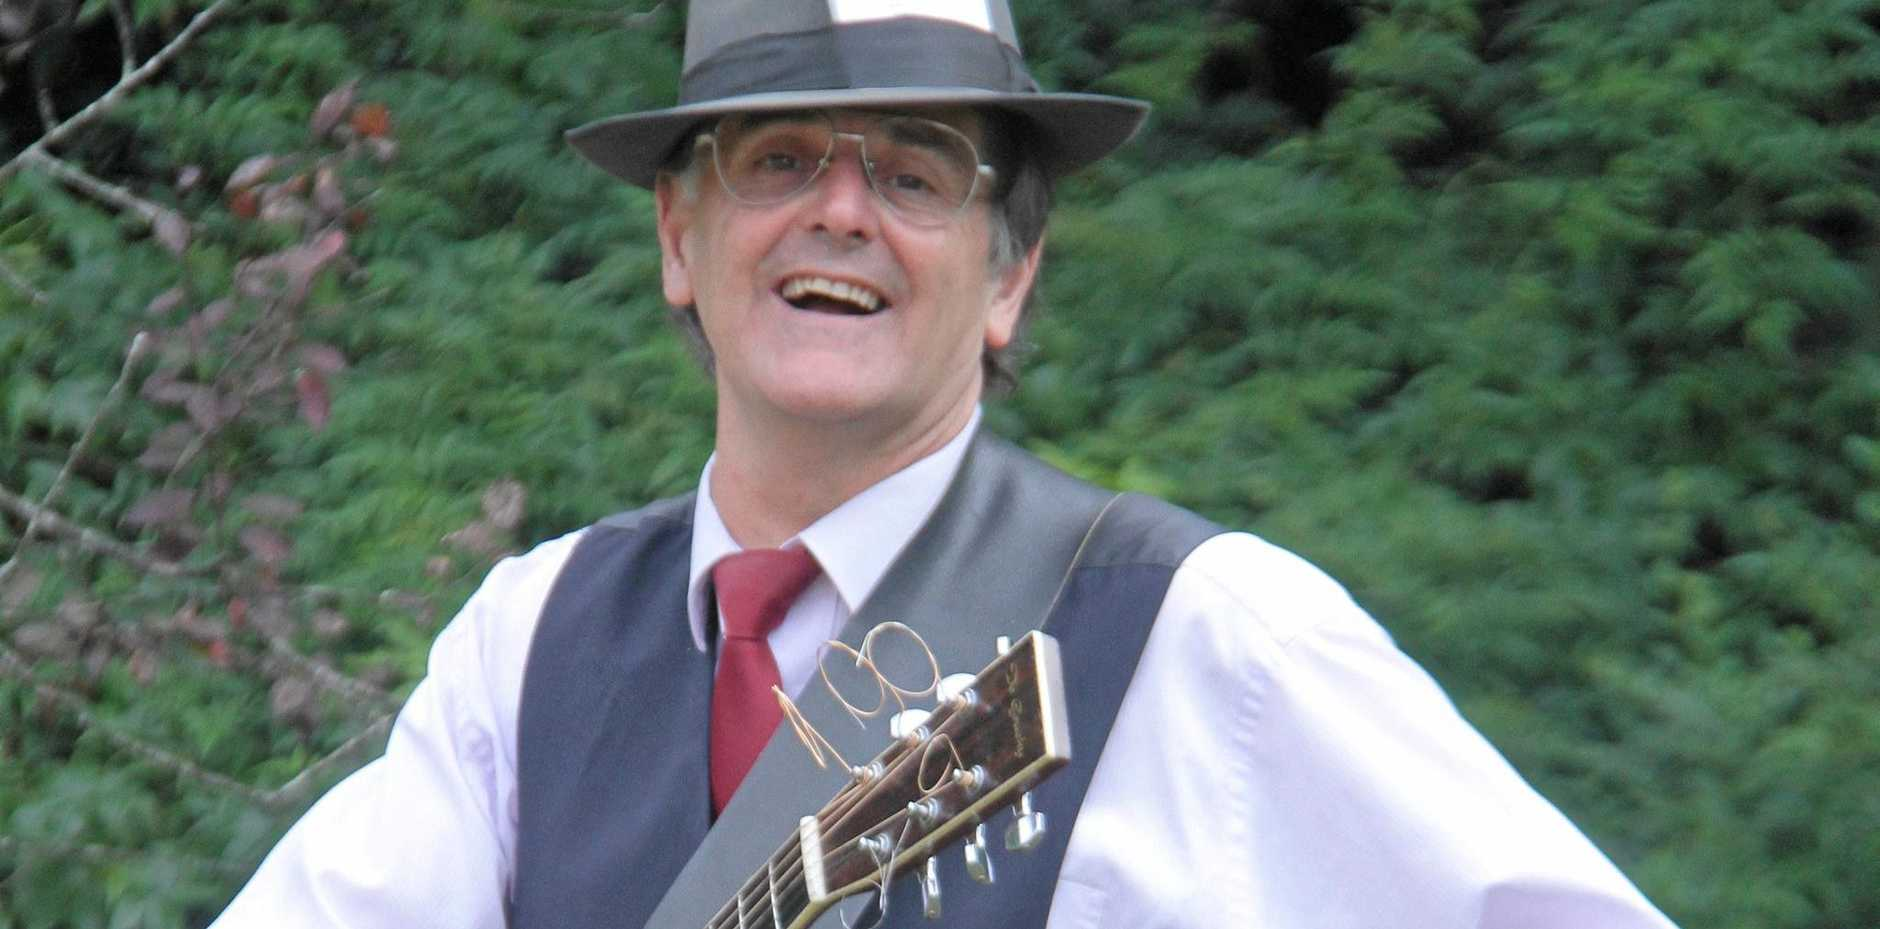 LIVE MUSIC: Pat Drummond will perform at Feast & Farmin' on Friday.